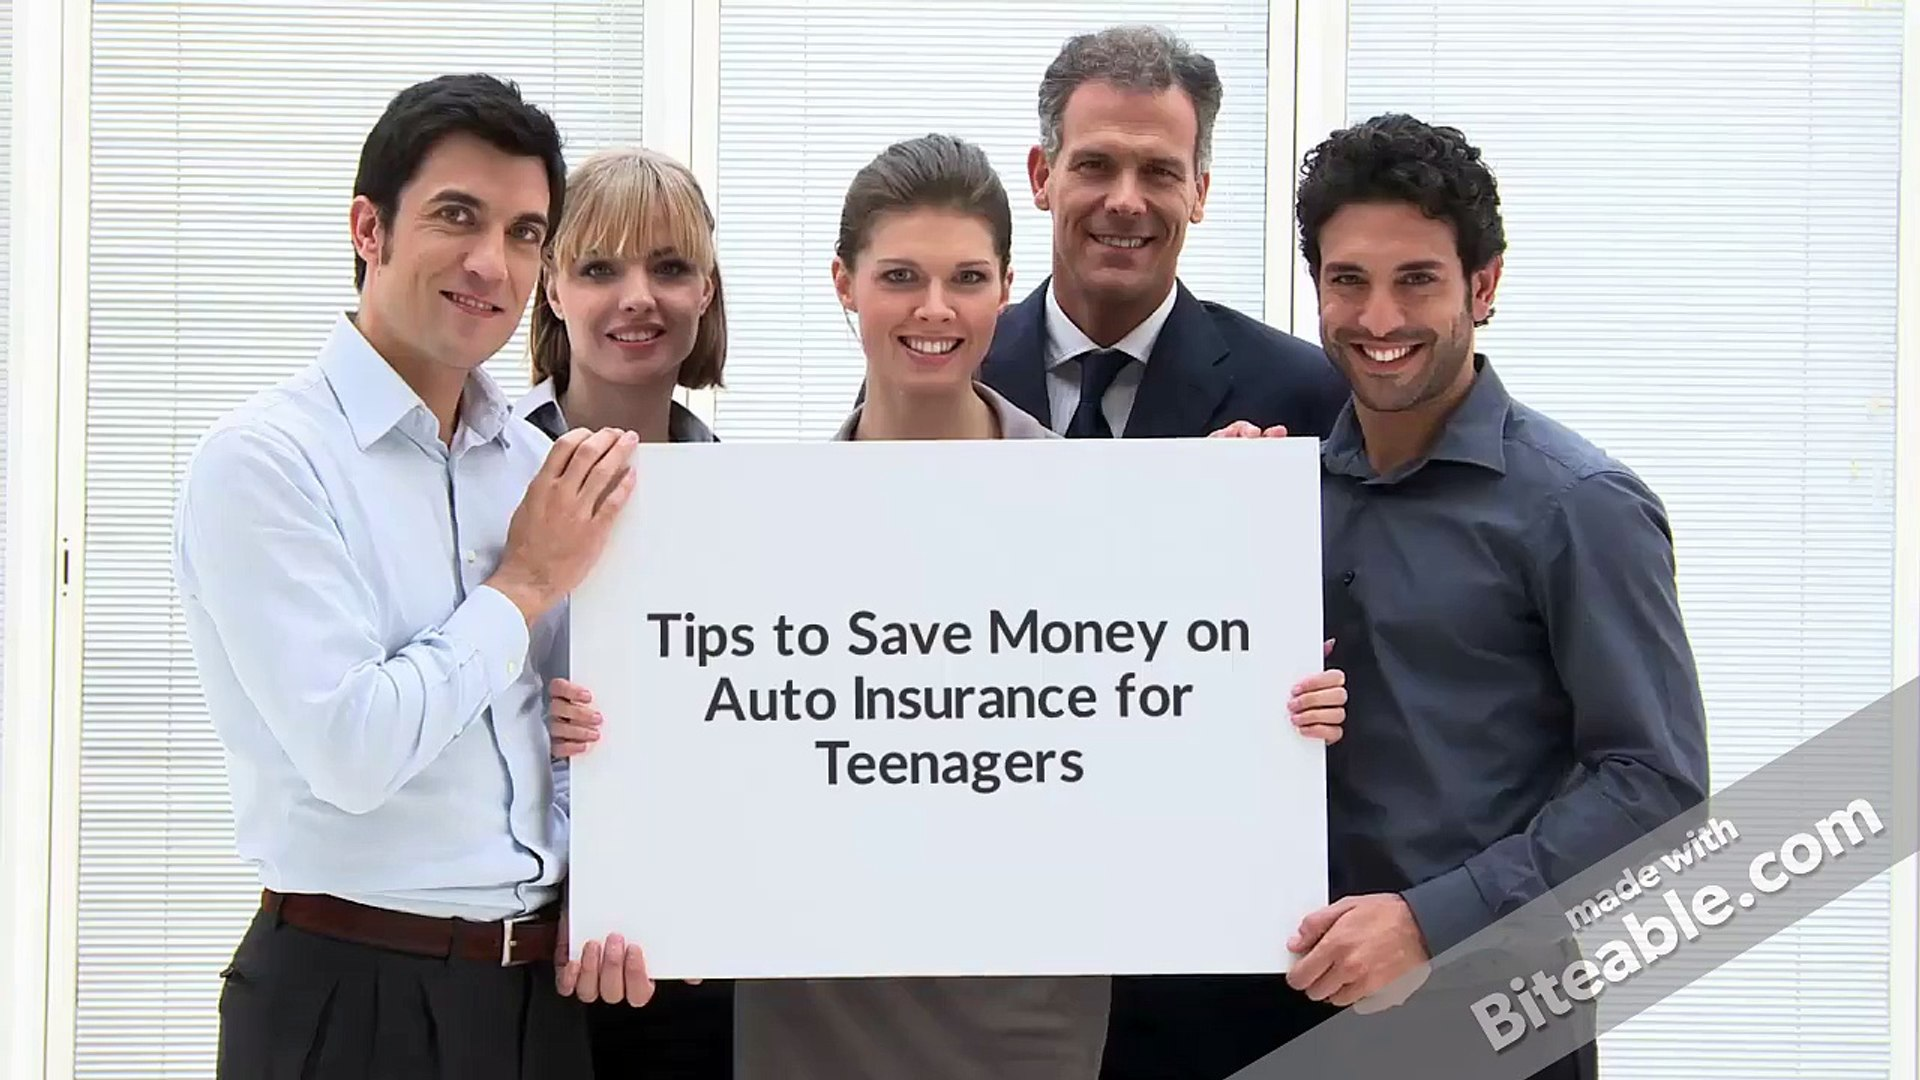 Tips to Save Money on Auto Insurance California for Teenagers